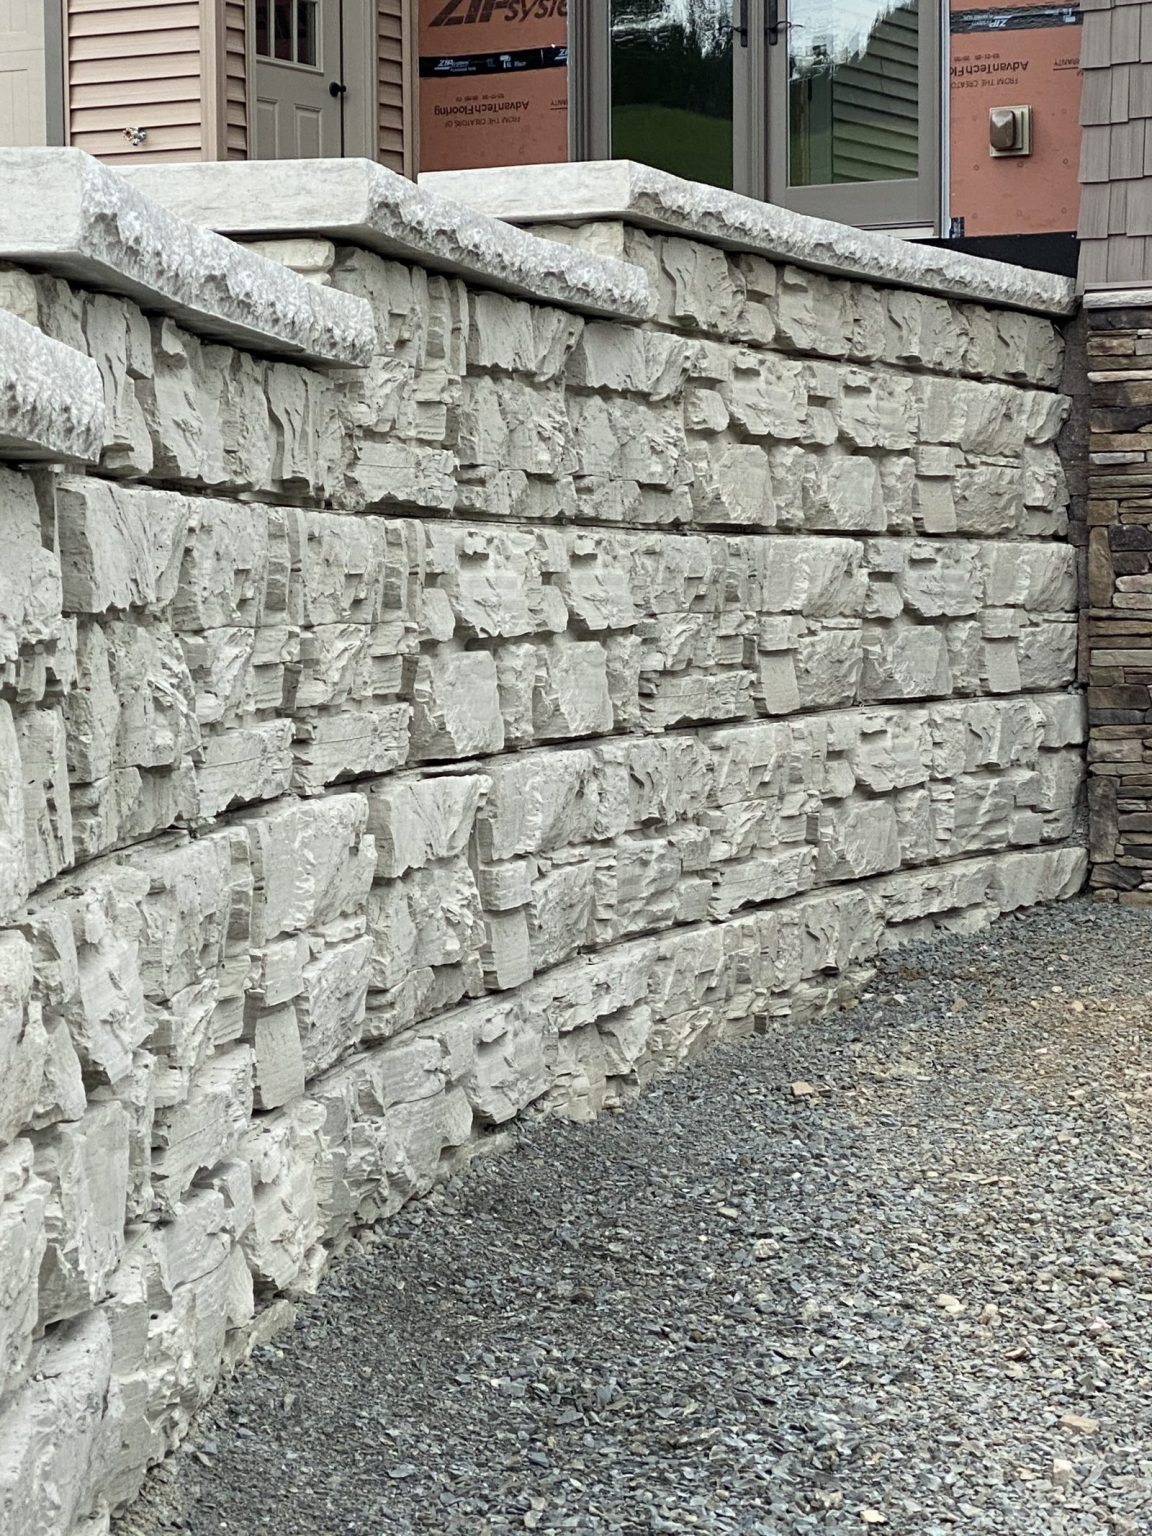 Residential MagnumStone retaining wall showing natural ledge face texture